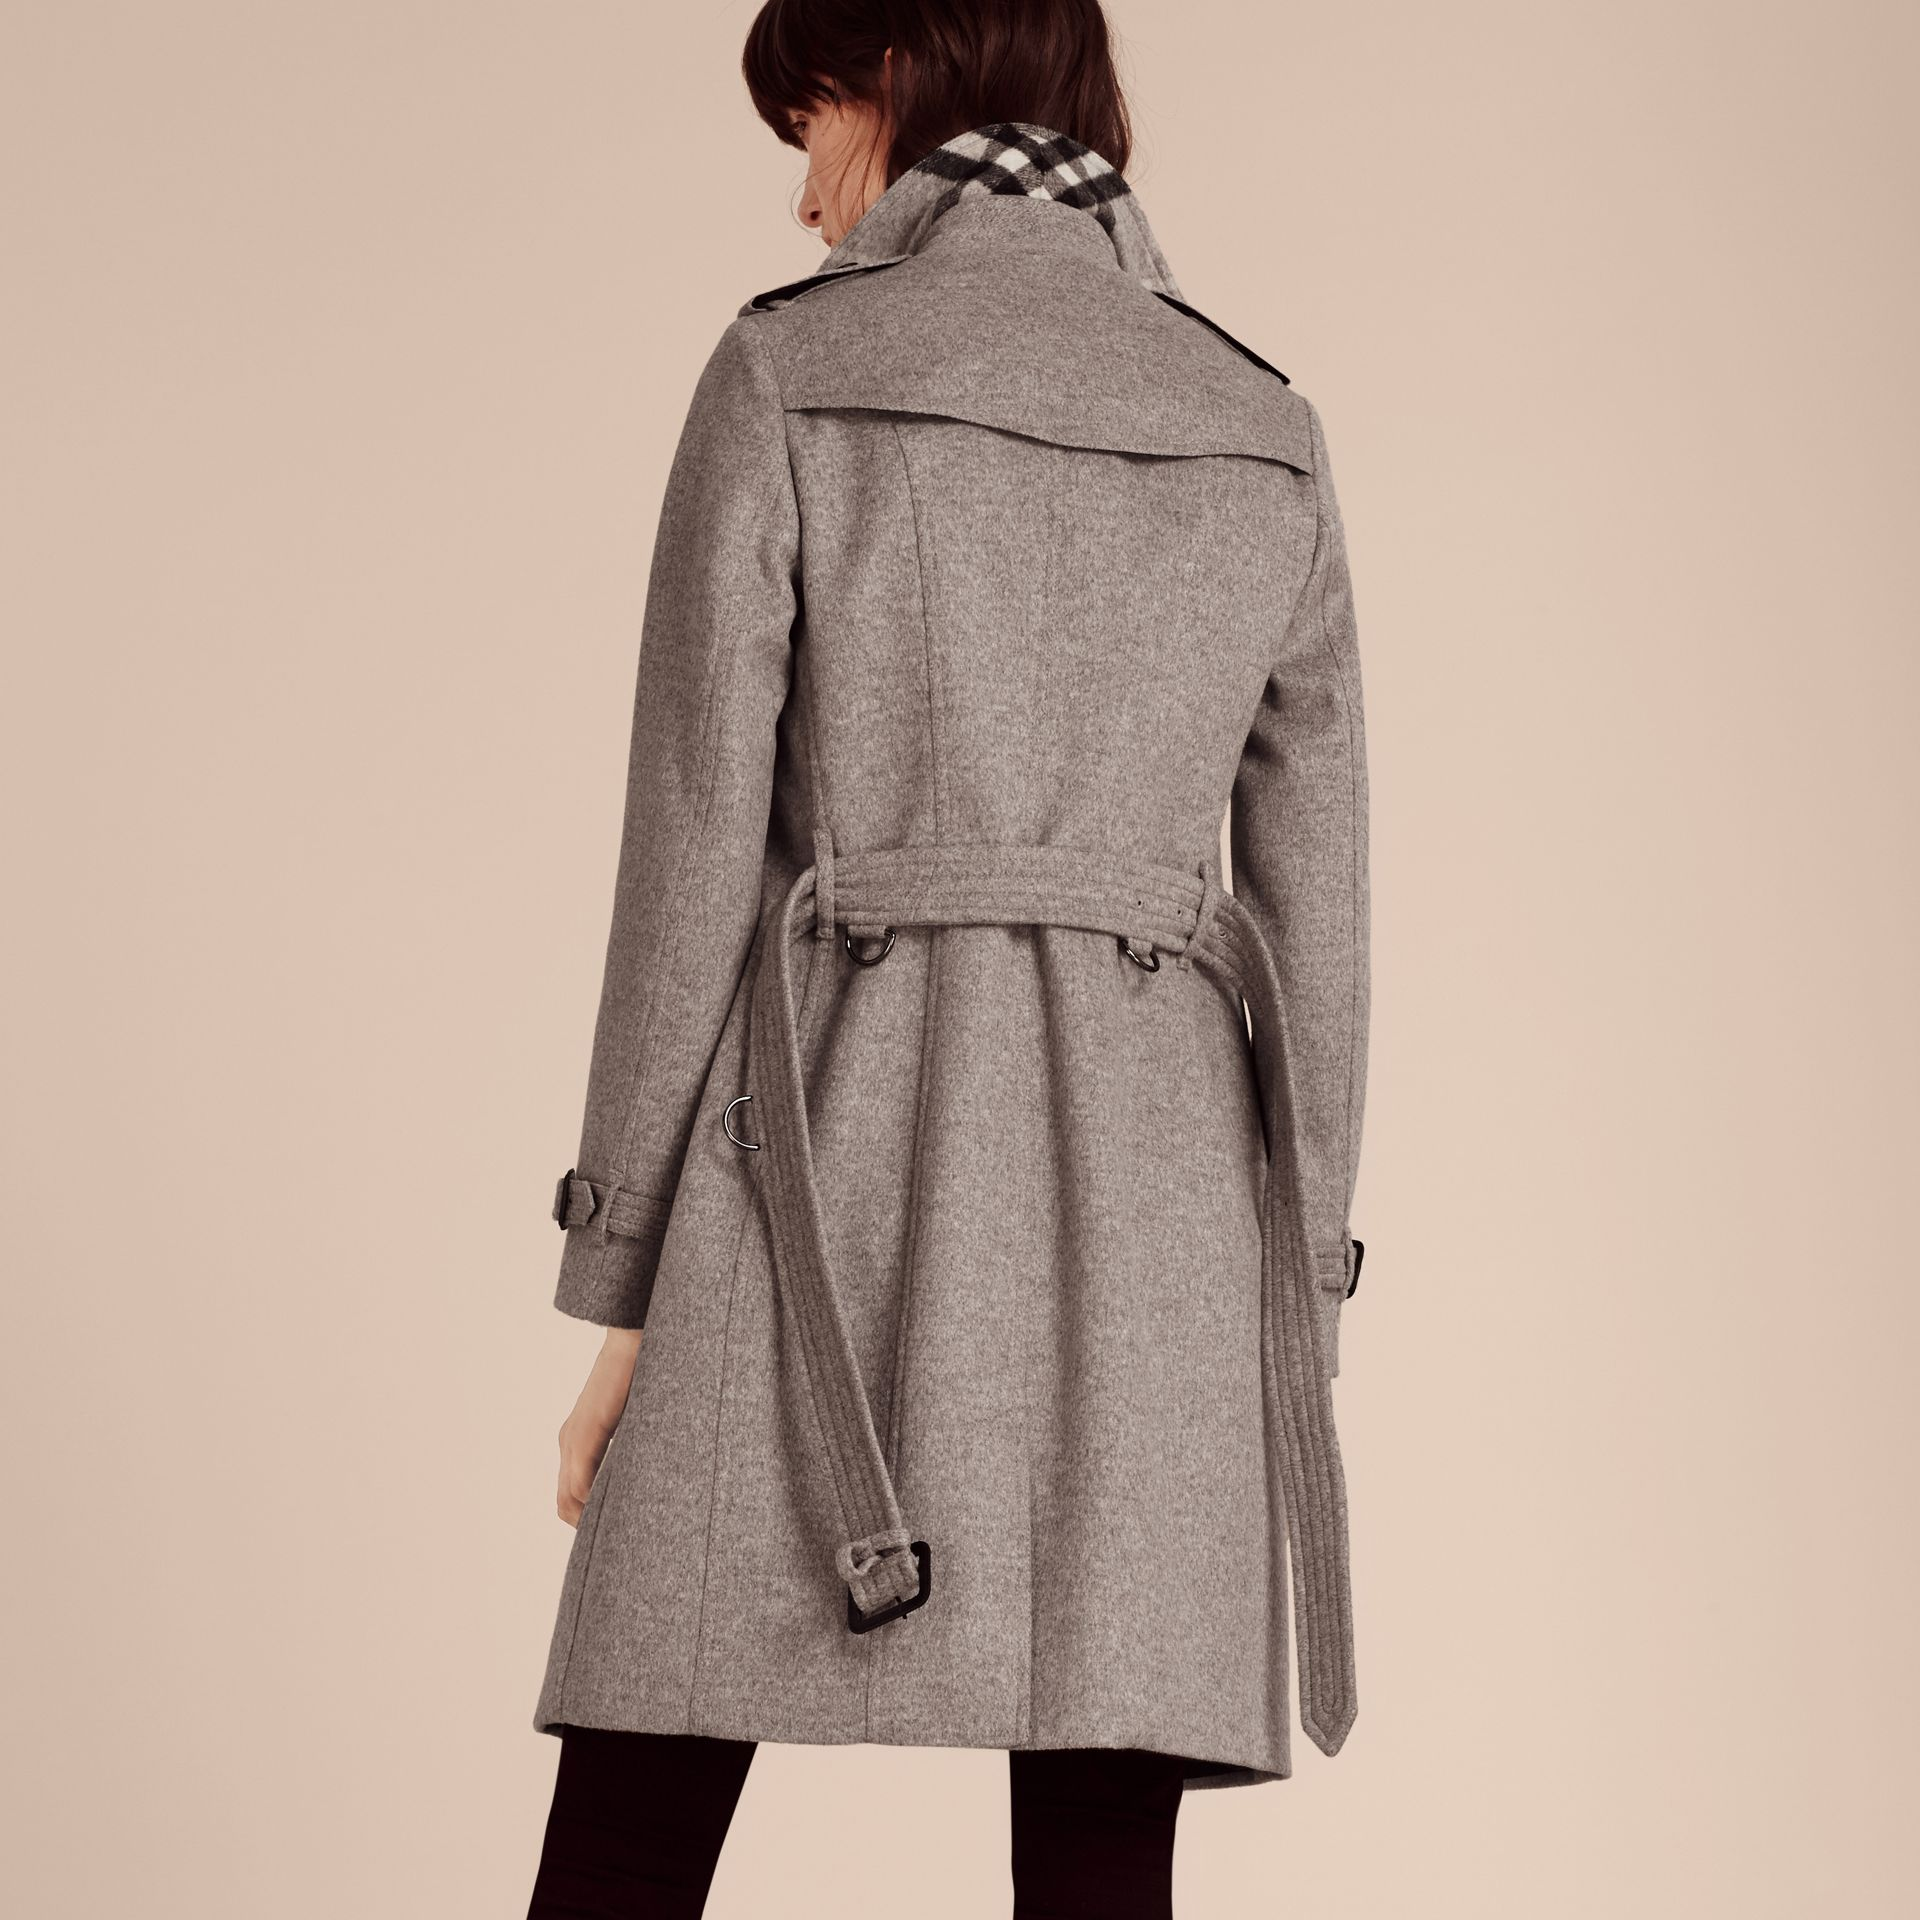 Pale grey melange Wool Cashmere Trench Coat with Fur Collar - gallery image 2